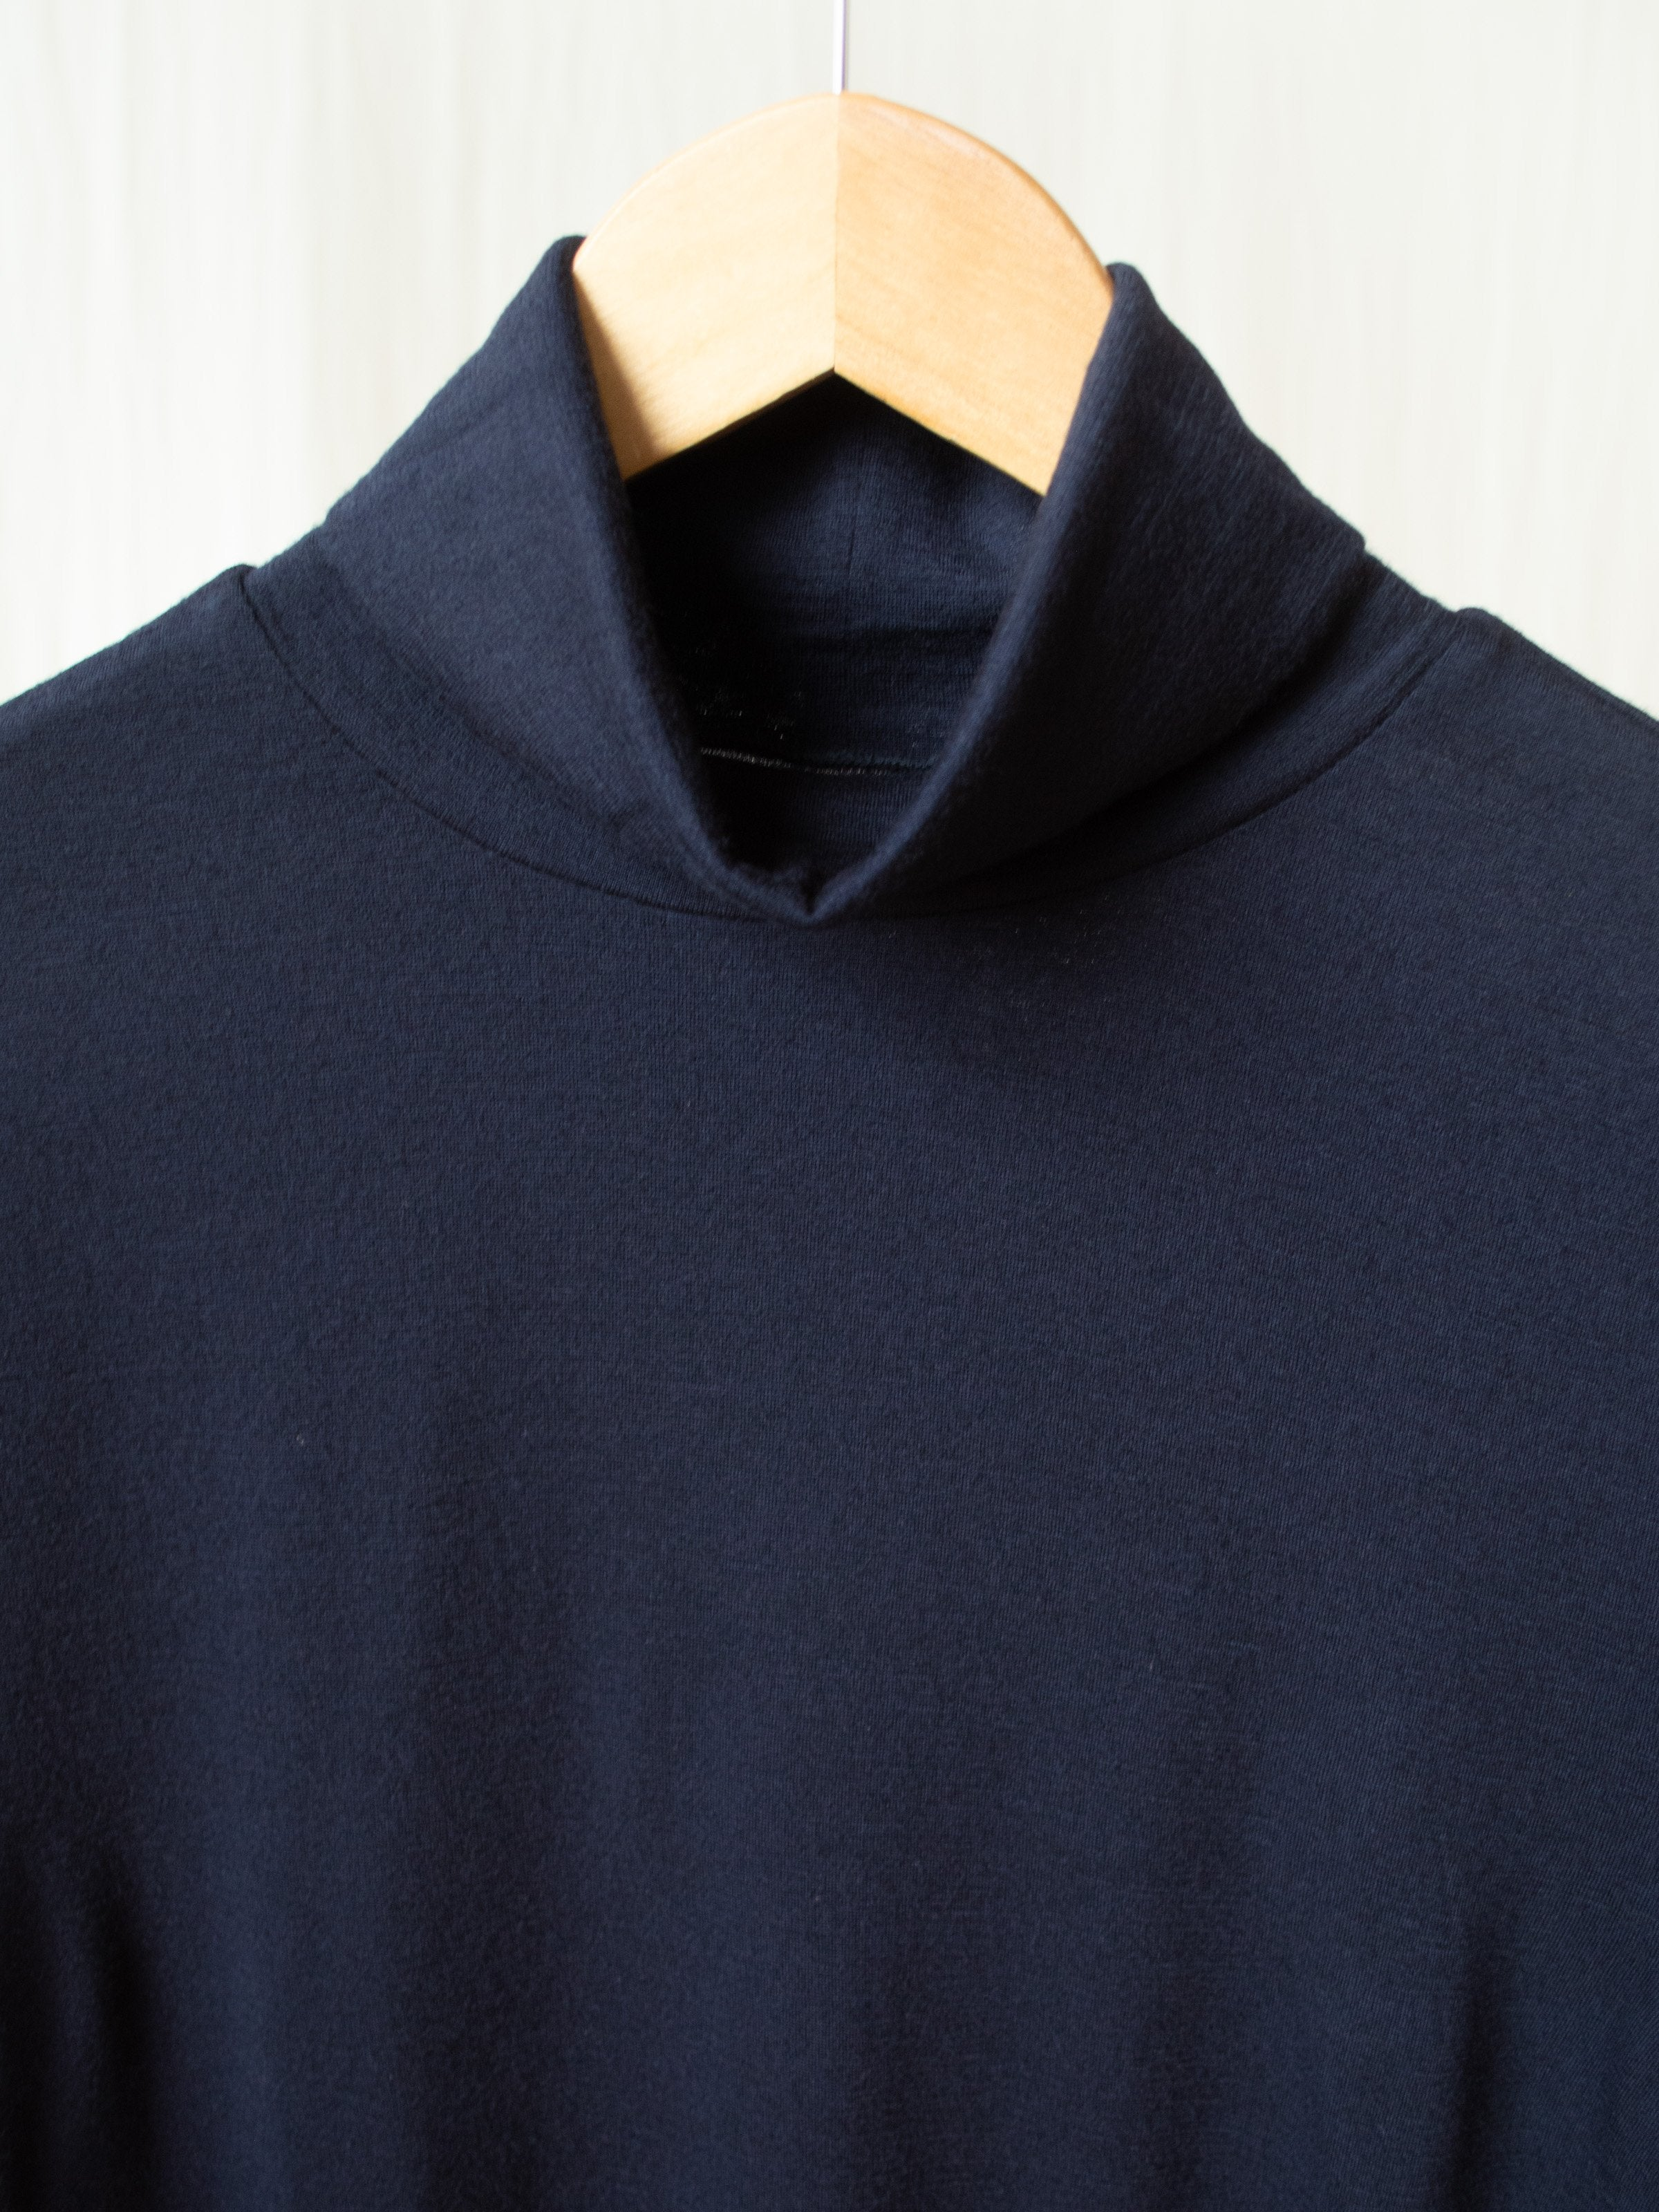 Namu Shop - ts(s) Washable High Gauge Wool Turtleneck - Navy